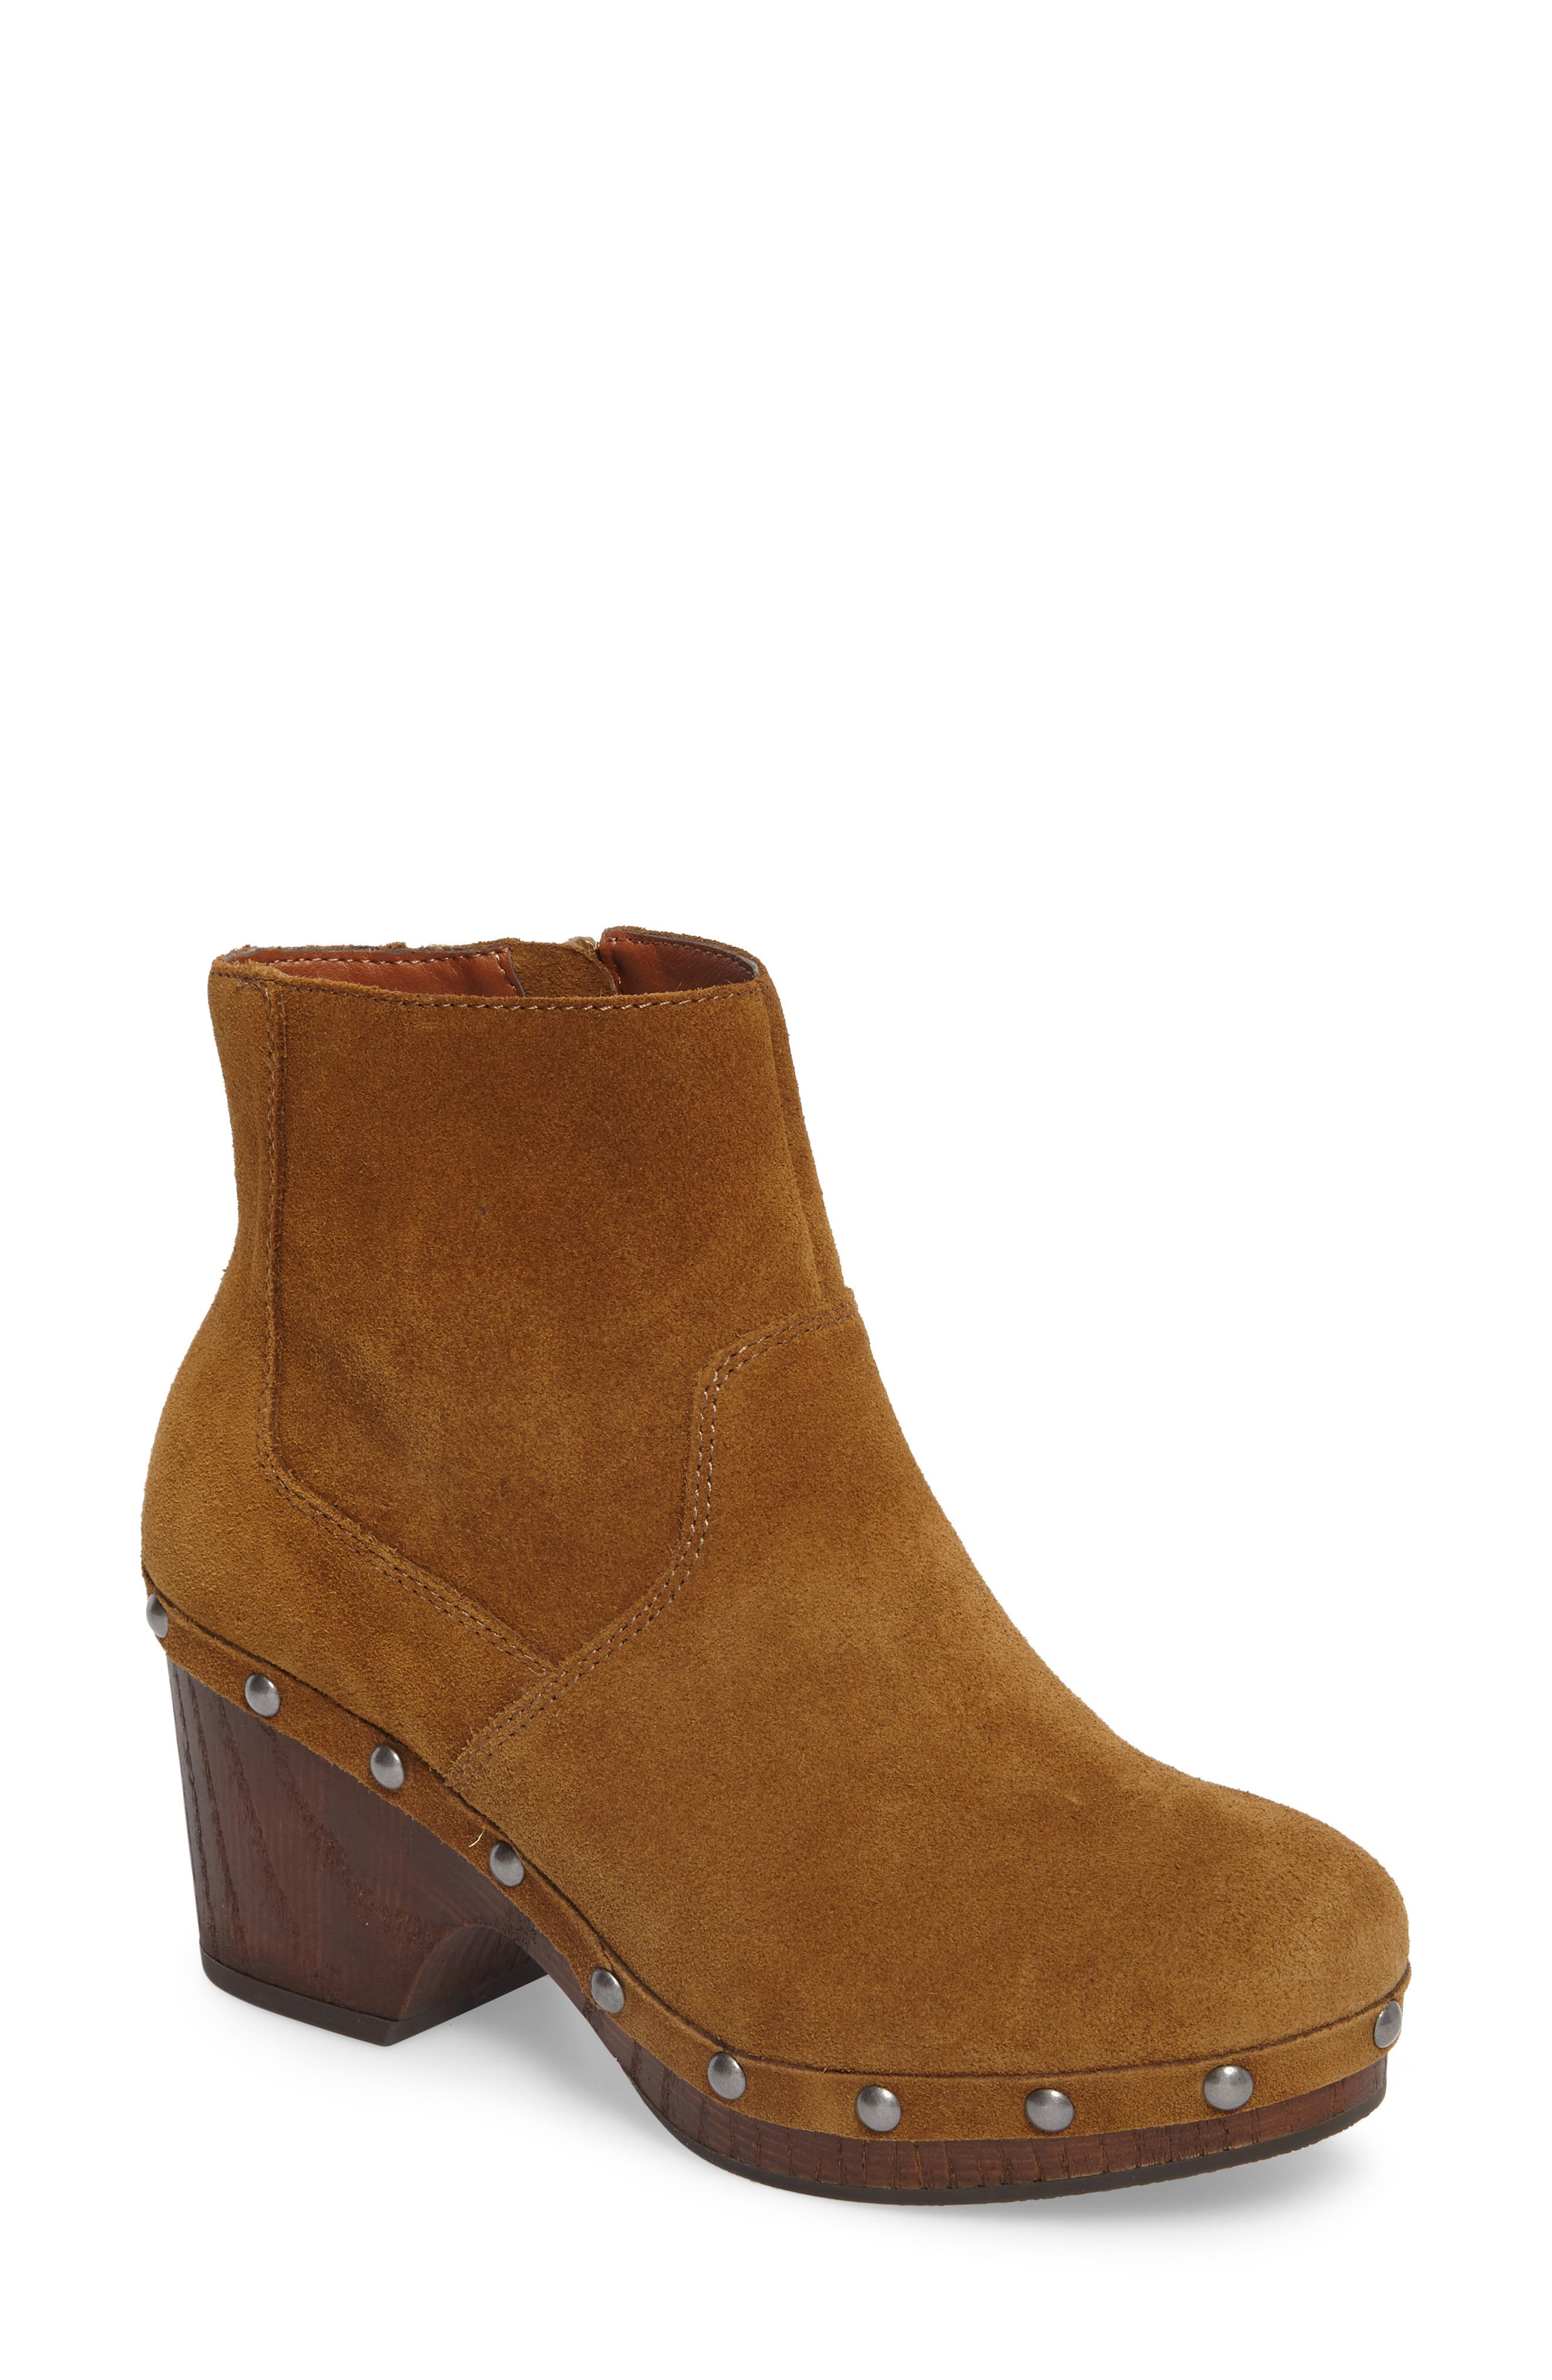 Alternate Image 1 Selected - Lucky Brand Yasamin Bootie (Women)